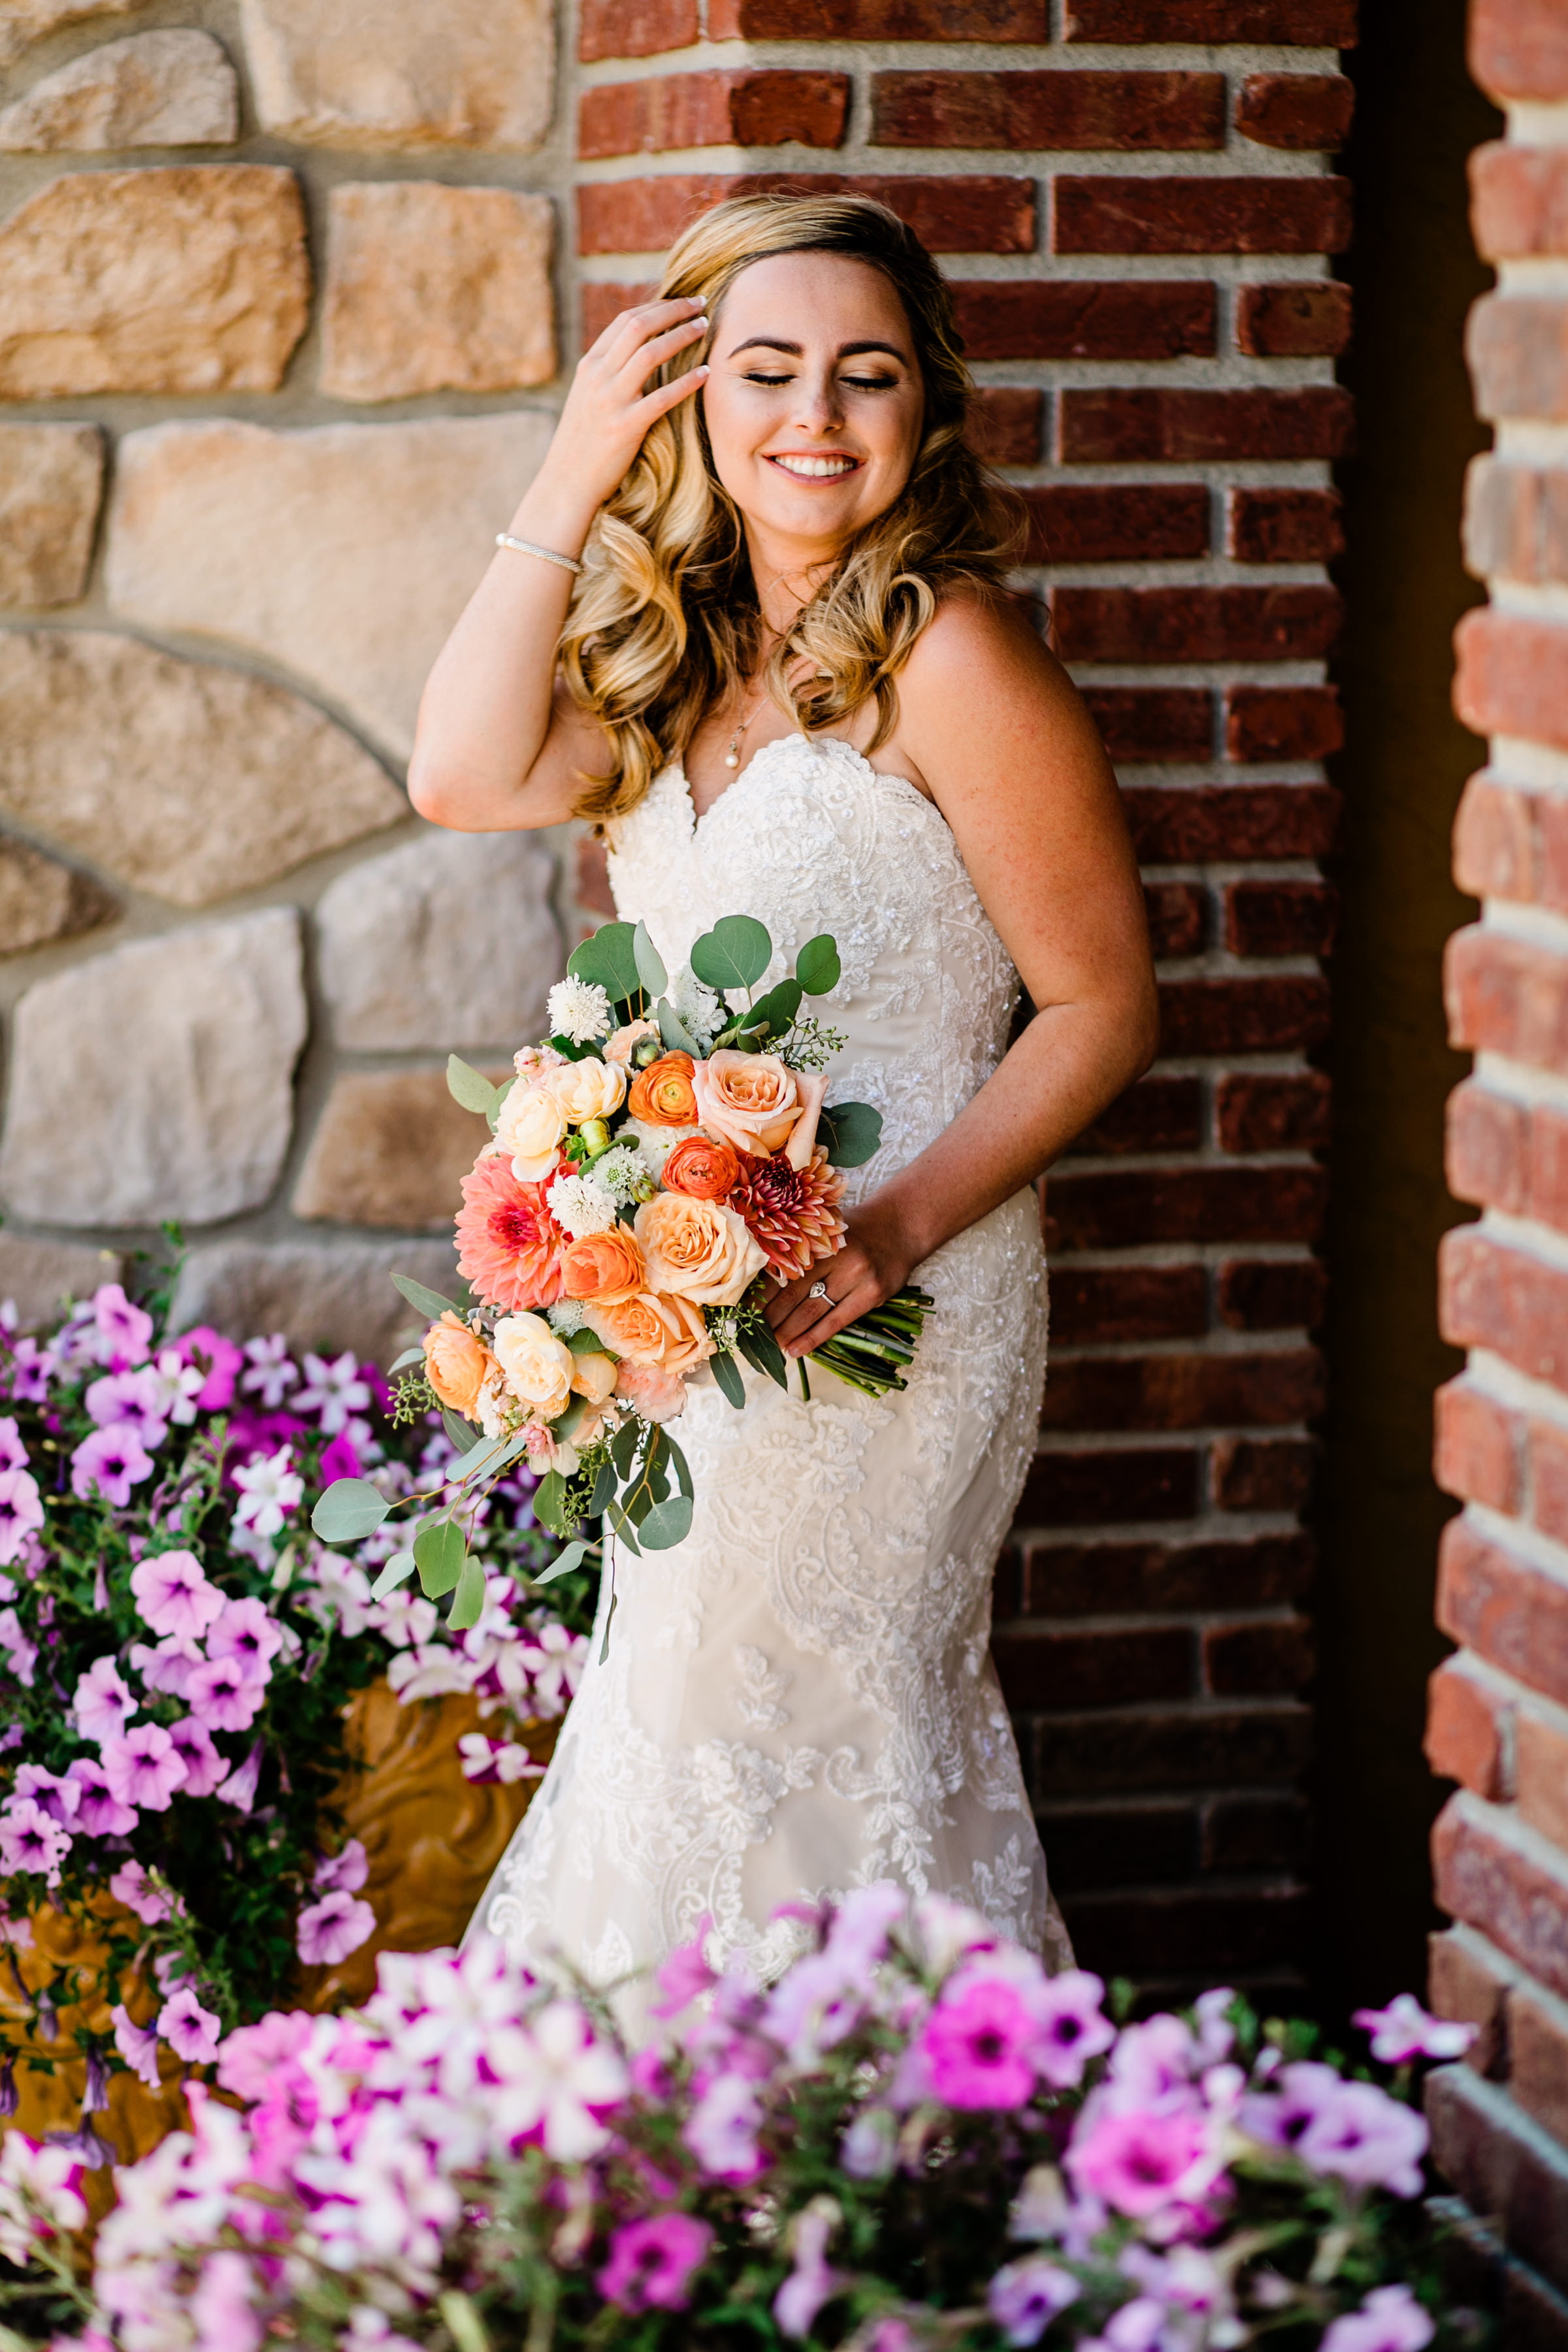 bride-with-bouquet-in-glamorous-pose-alante-photography